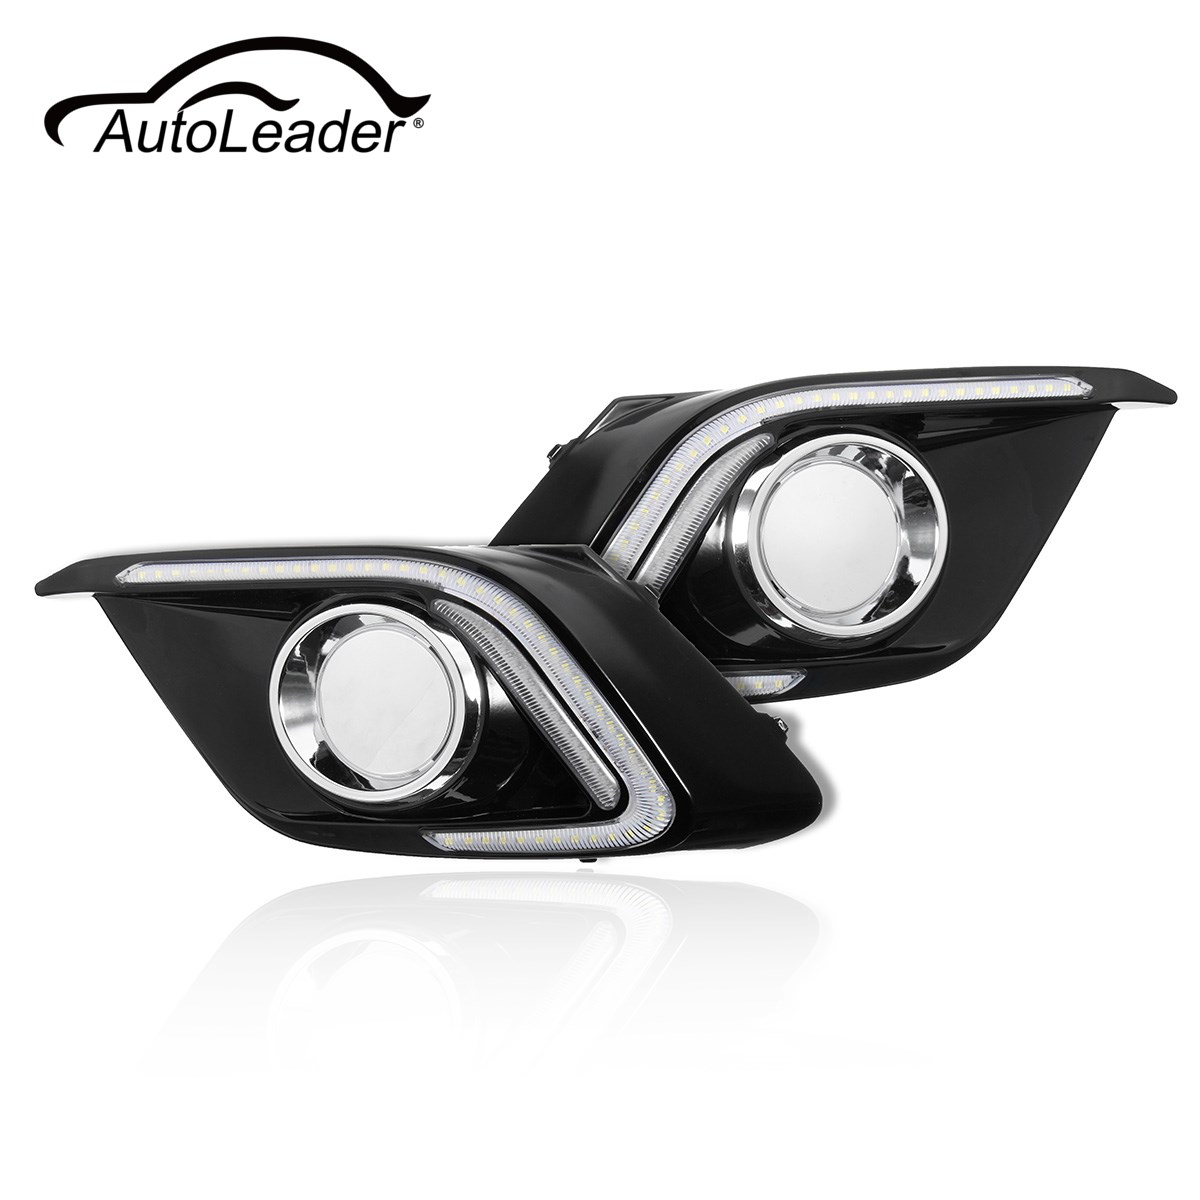 AutoLeader 1Pair 20W Car LED Light DRL Daytime Running Fog Light Lamp Turn Signal Lights For Mazda 3 Axela 2014-2015 new arrival a pair 10w pure white 5630 3 smd led eagle eye lamp car back up daytime running fog light bulb 120lumen 18mm dc12v